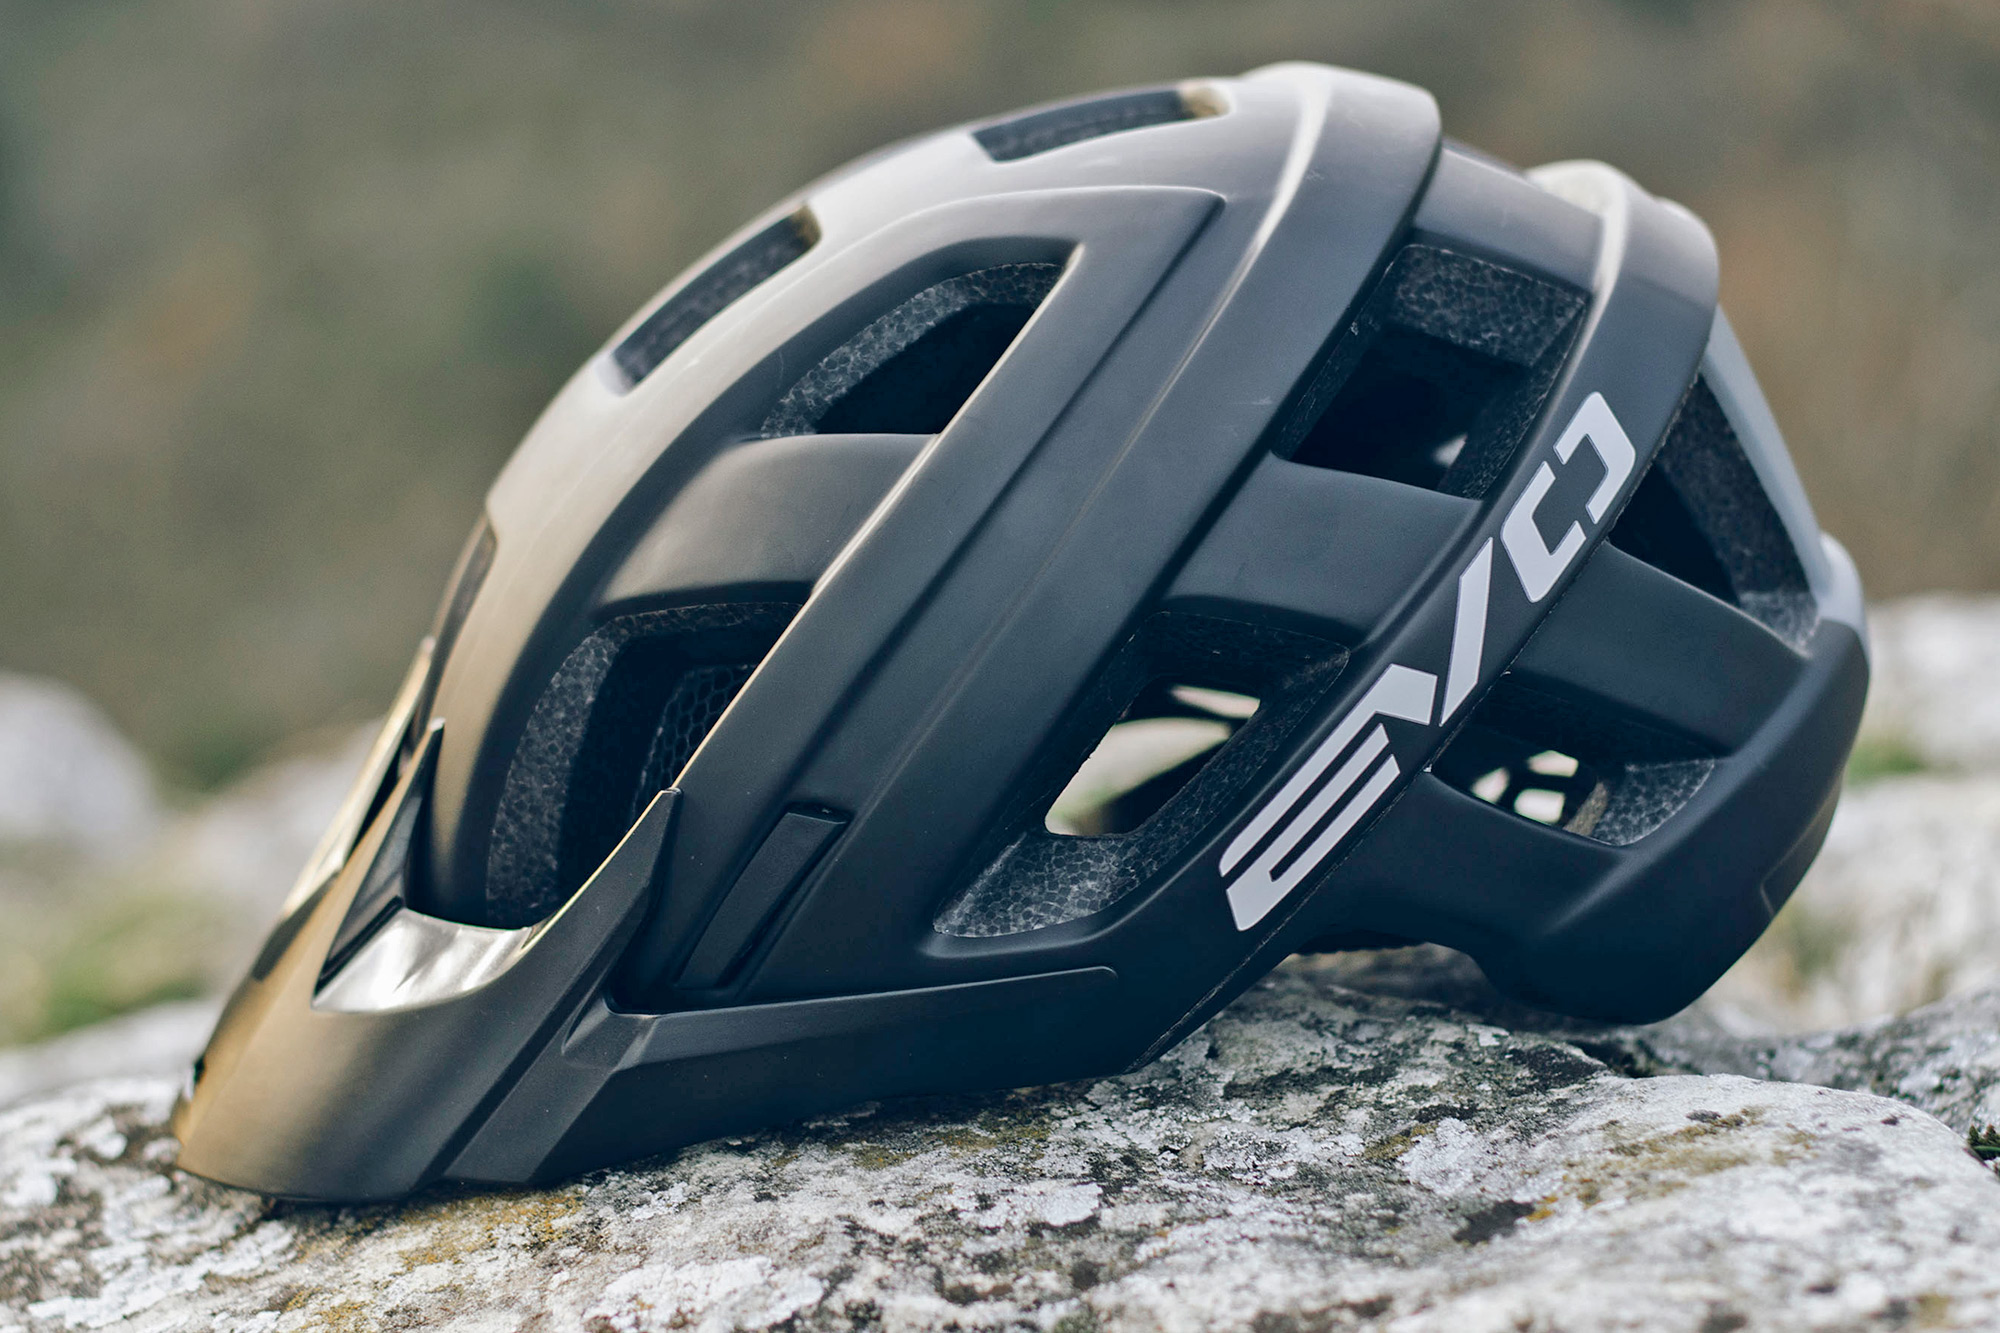 Evo Enduro Helmet From Bh Offers Trail Protection On The Cheap